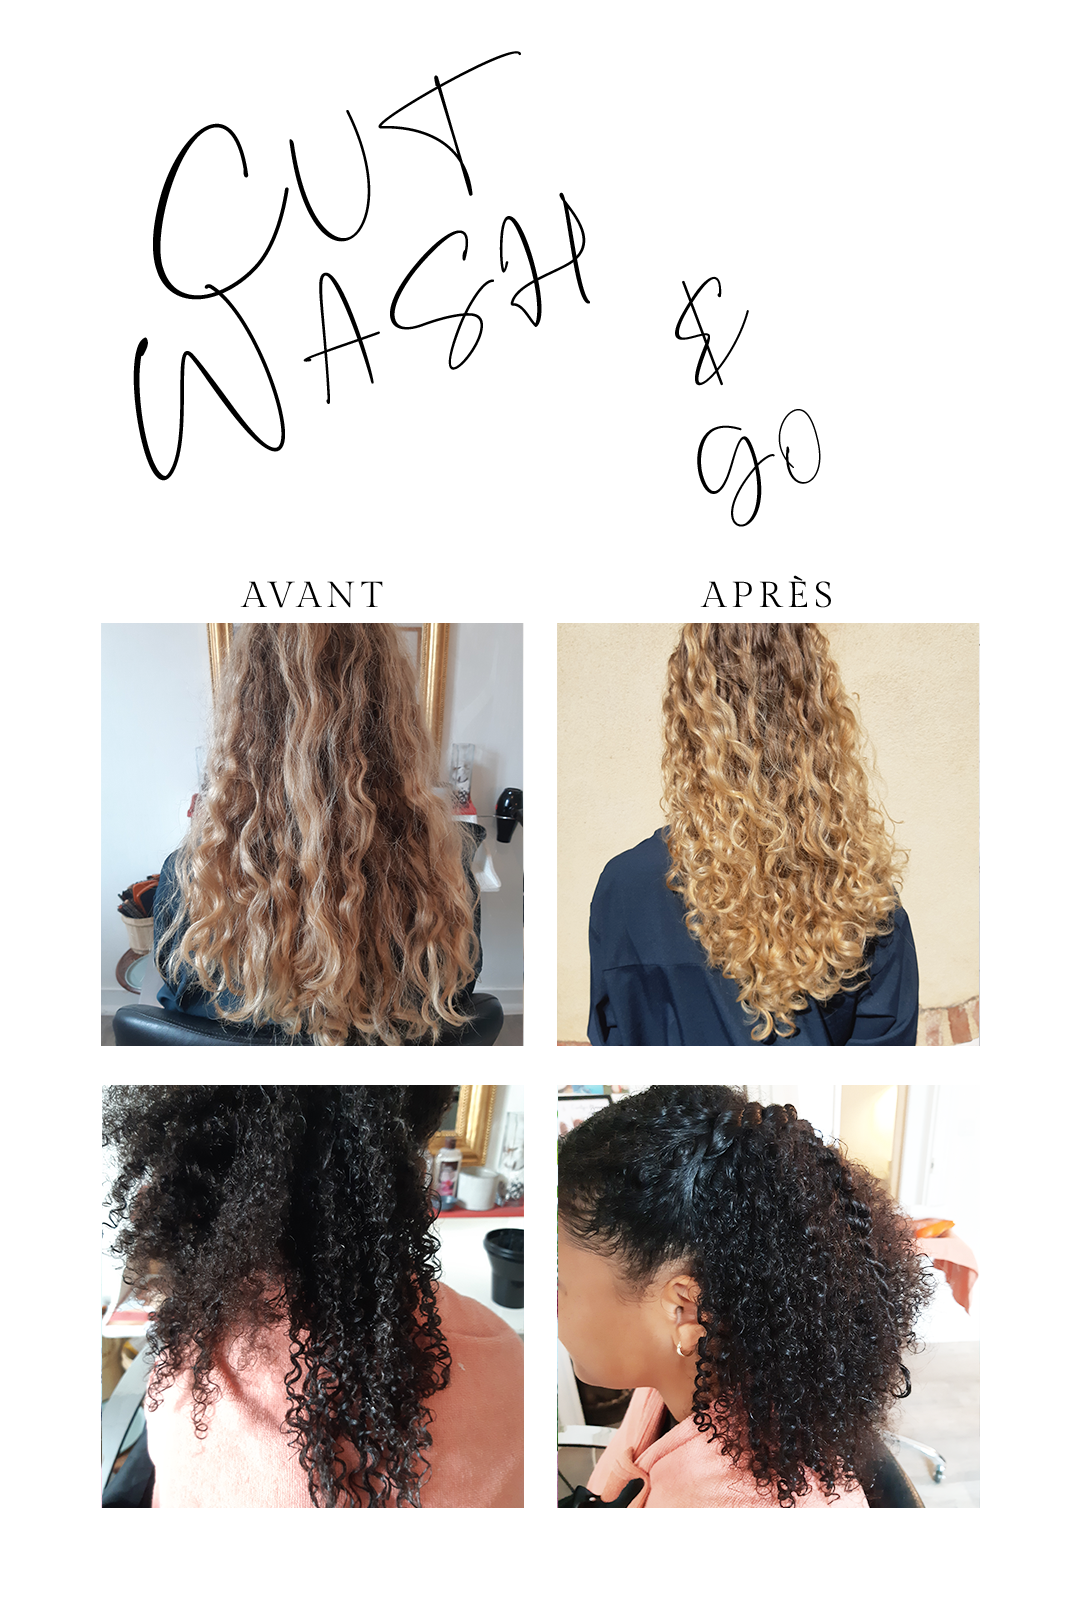 exemple site cut wash n go 2